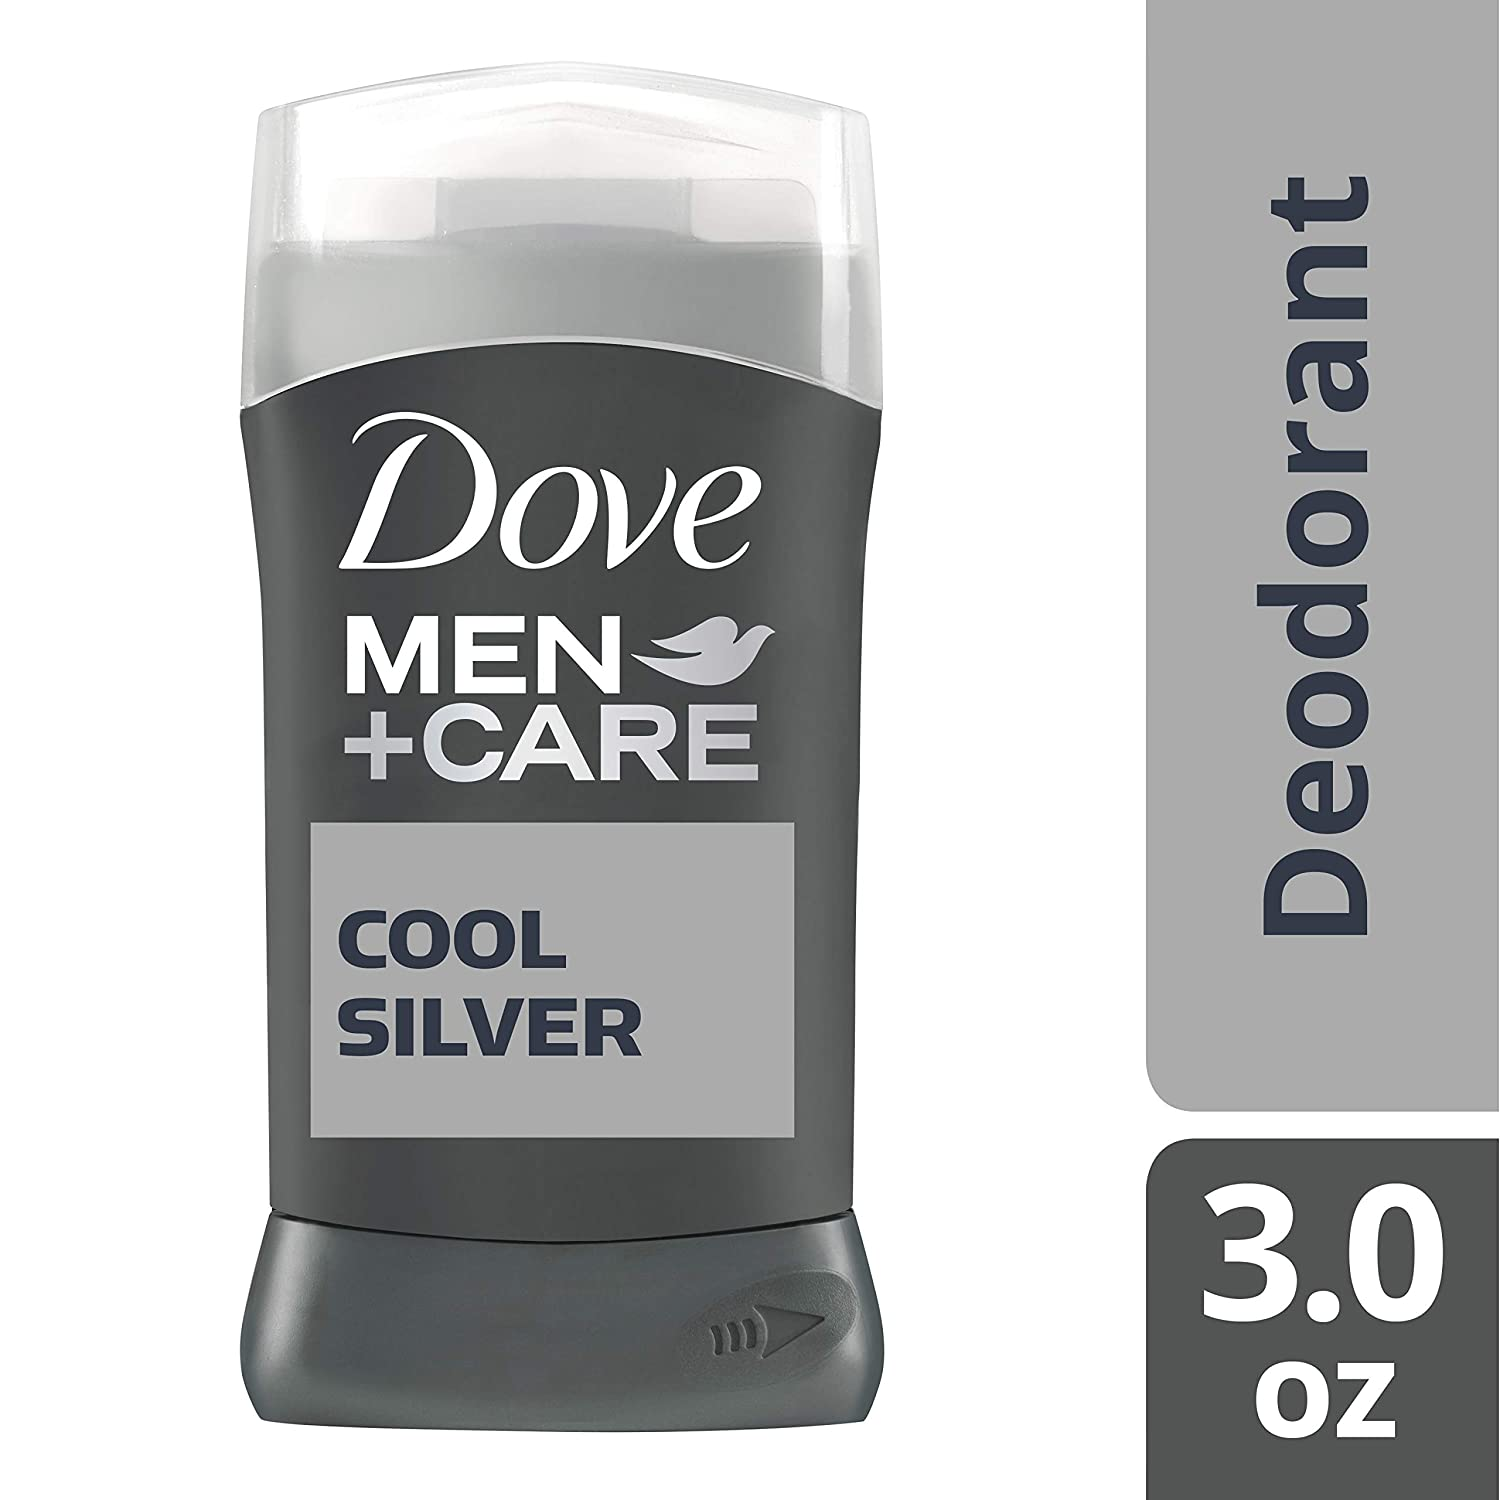 Dove Men+Care Deodorant Stick, Cool Silver, 3 oz